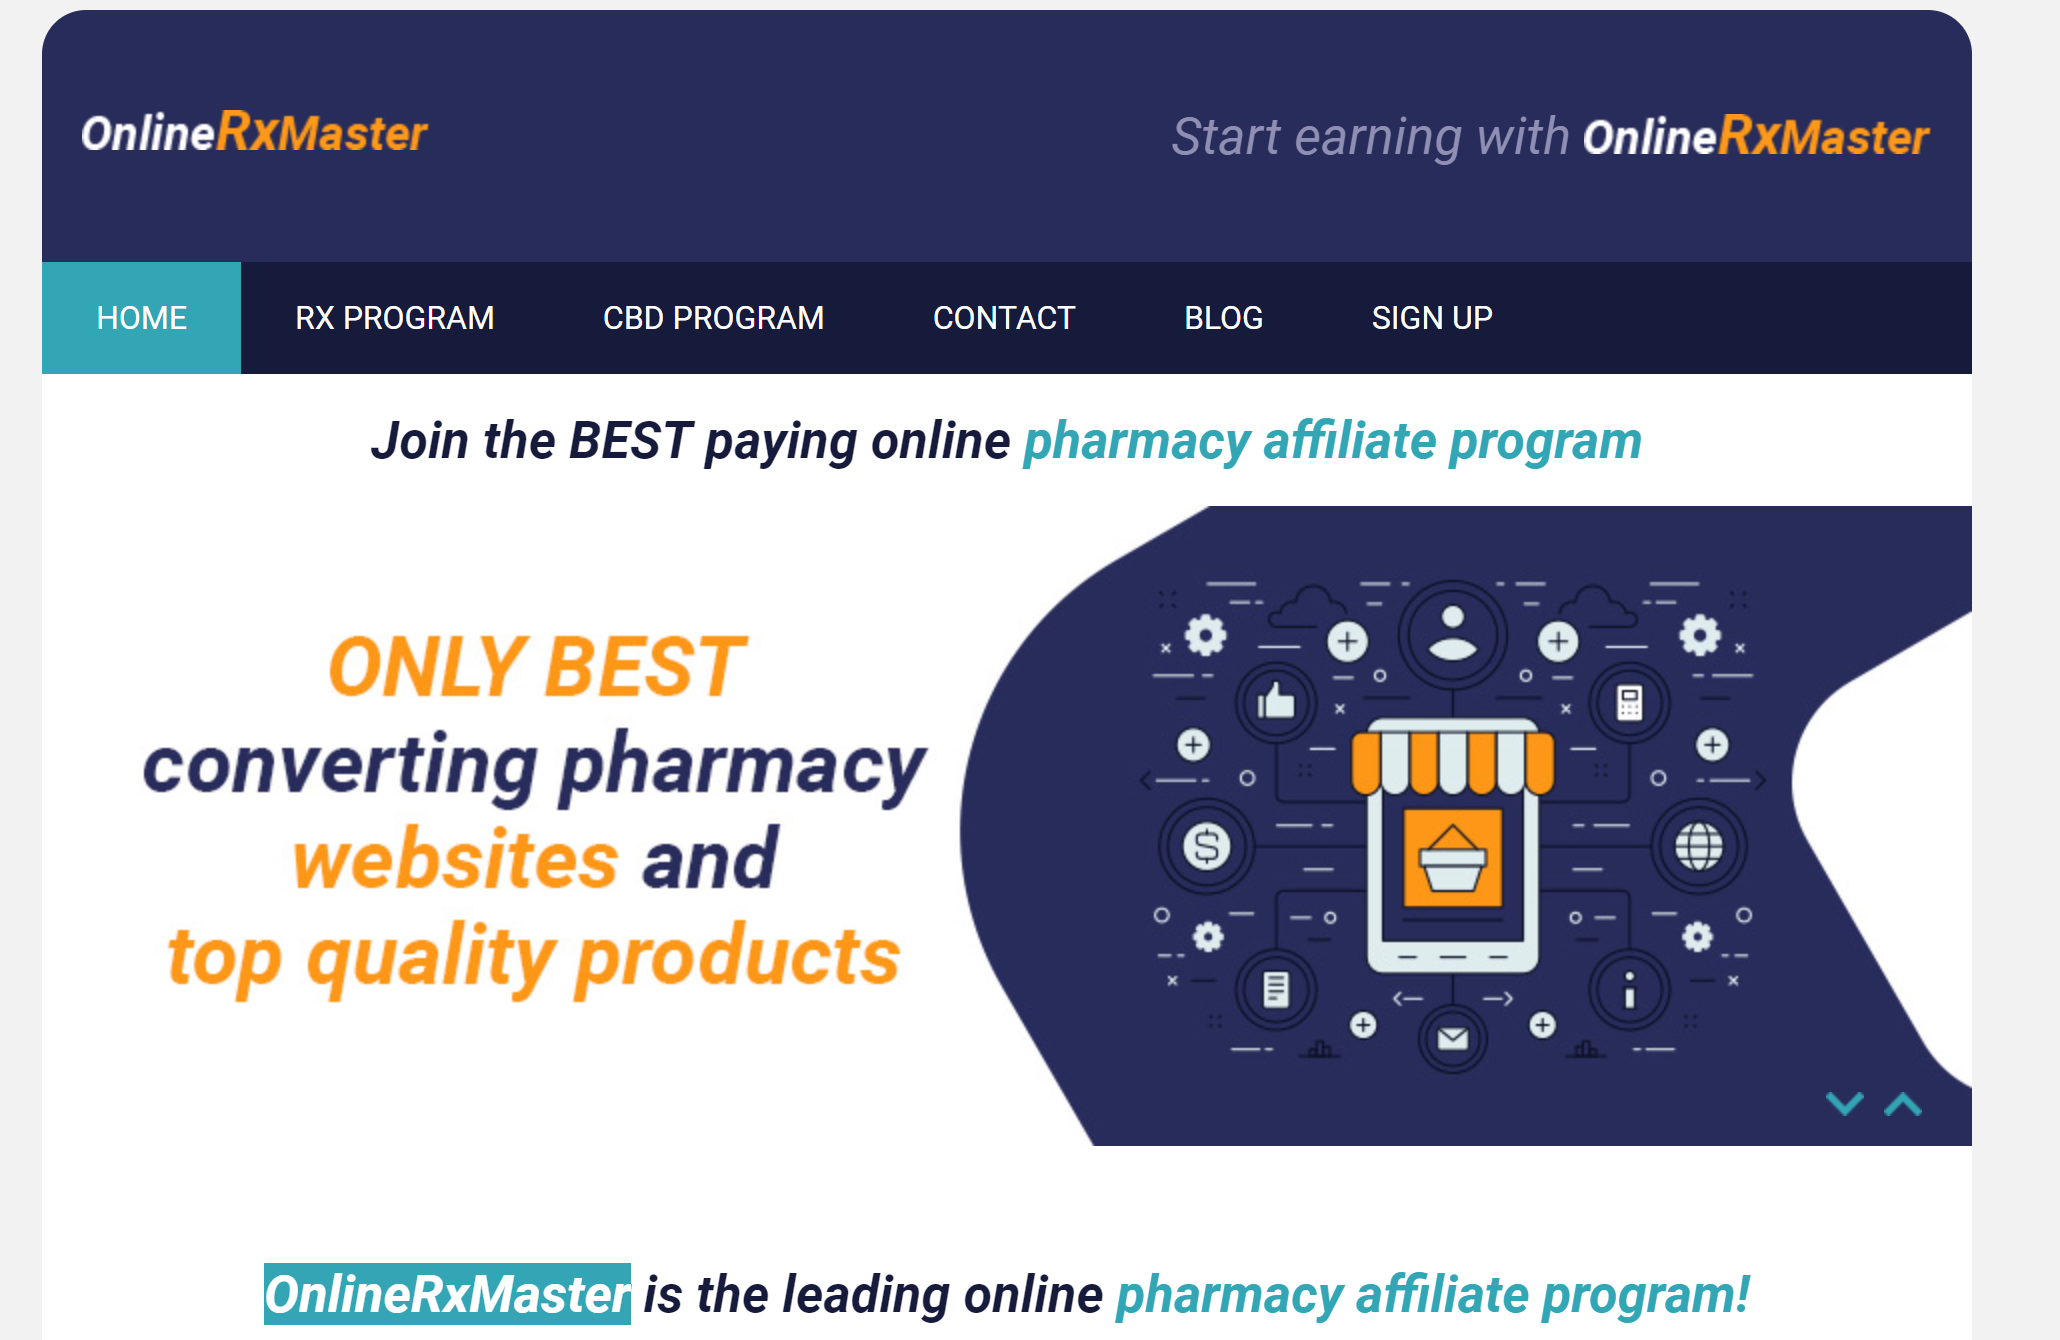 onlinerxmasters Top Natural Health Affiliate Programs